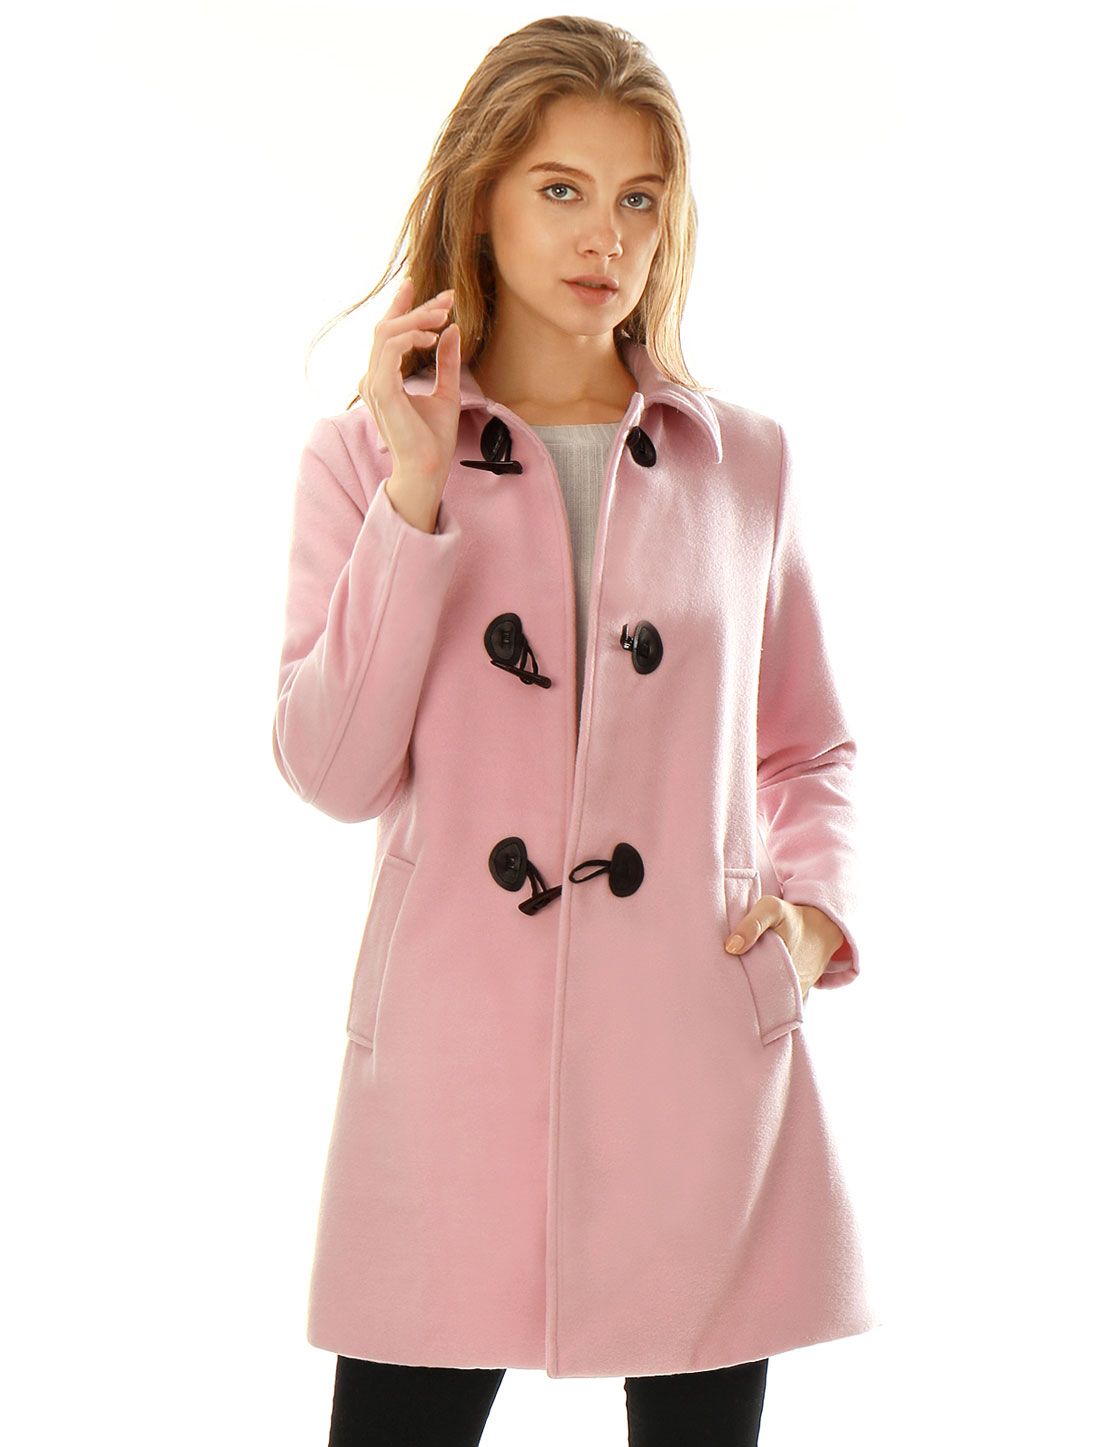 Women Turn Down Collar Slant Pockets Worsted Longline Toggle Coat Pink M